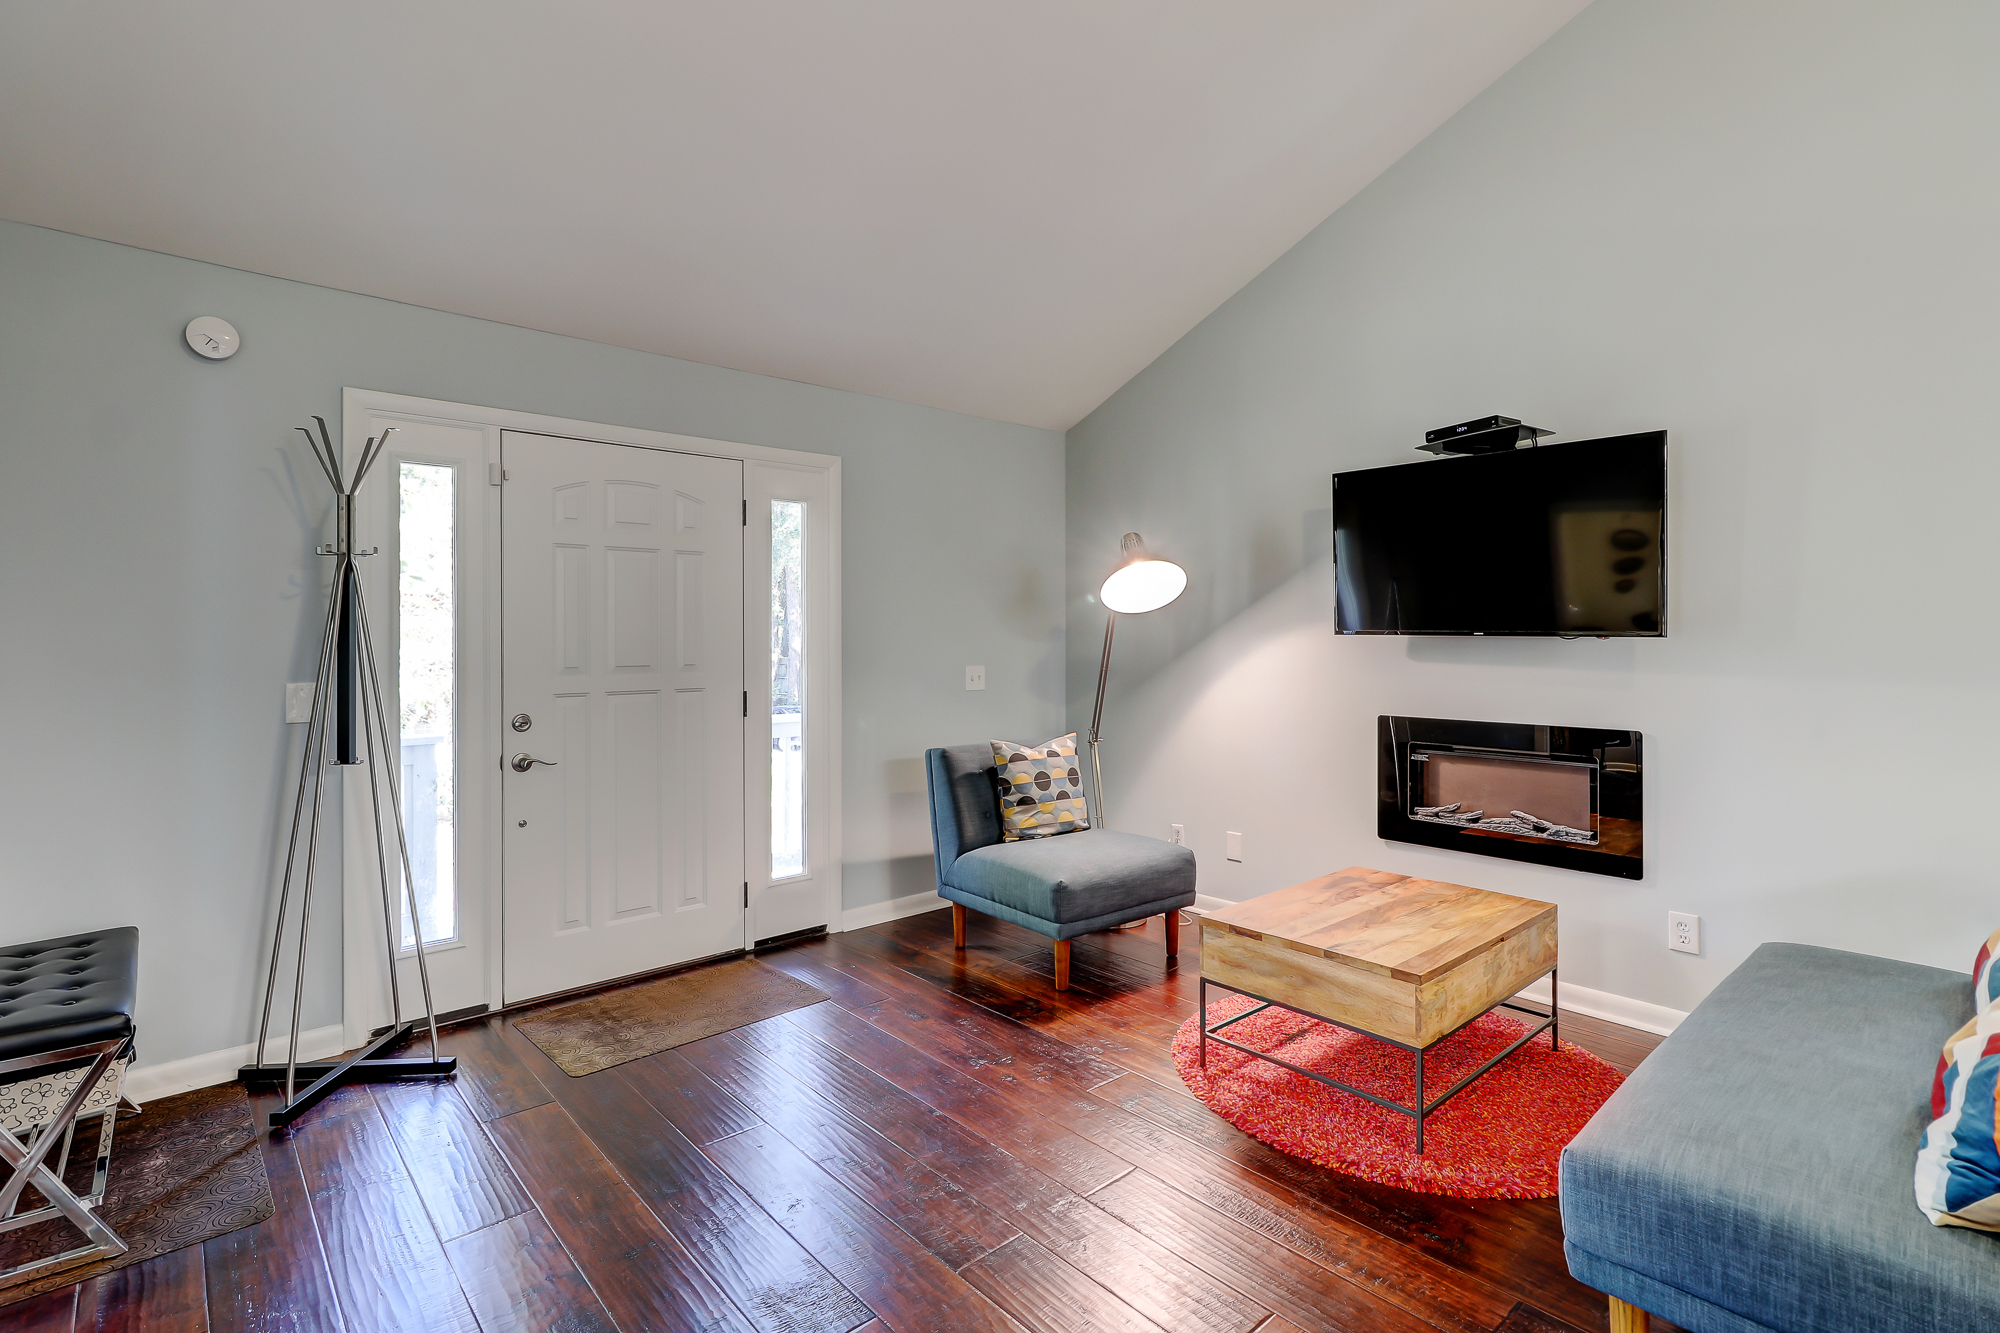 Handscraped hardwoods, cathedral ceiling, fireplace, wall mounted TV and all in perfect condition. 8 Bradley Beach, Hilton Head Island, MLS# 388240